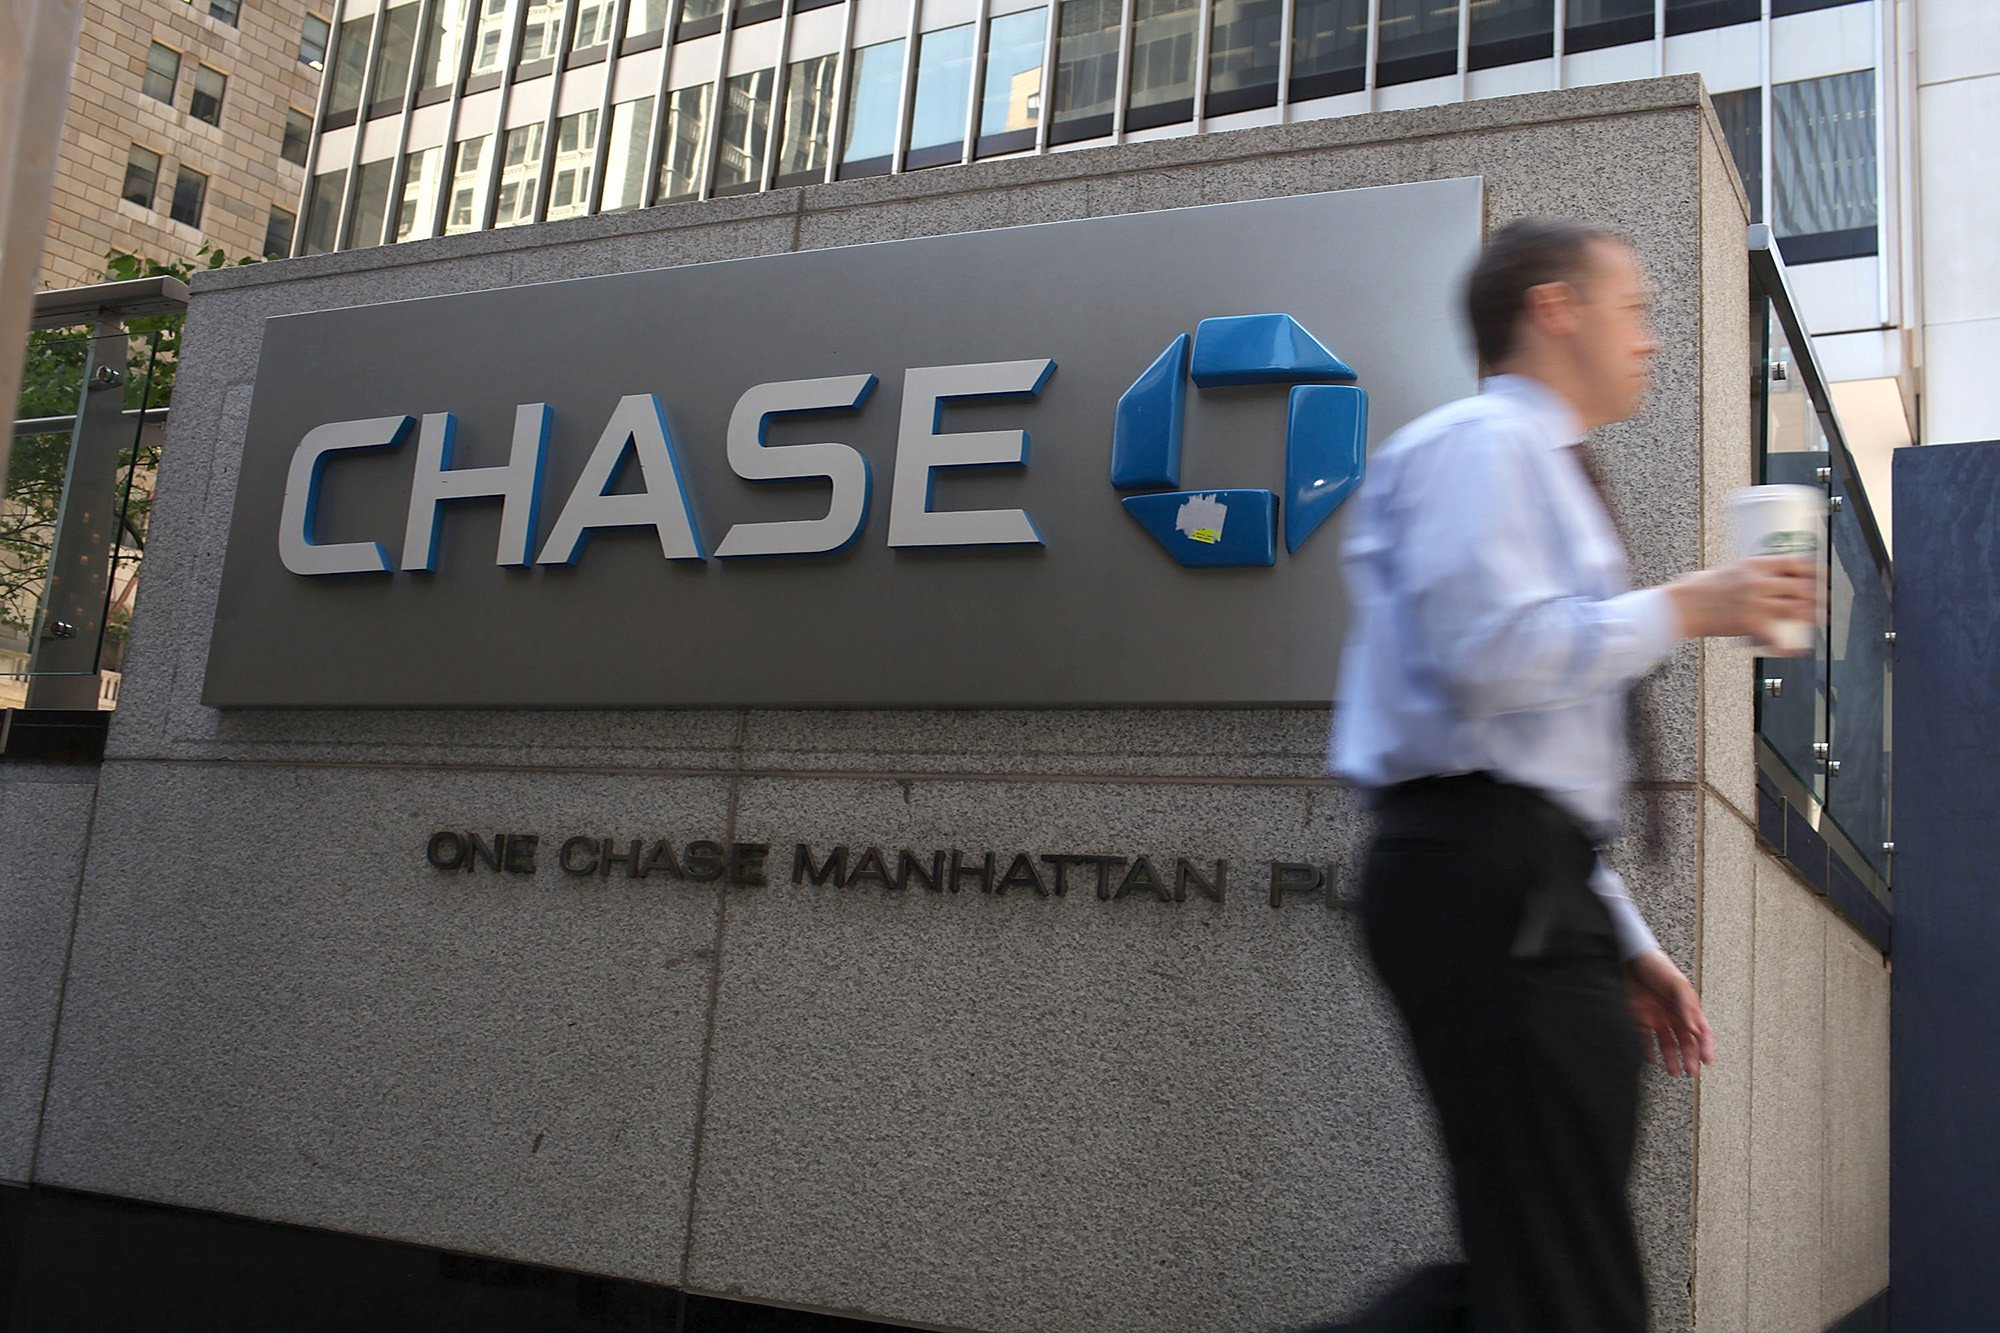 Bizarre glitch let Chase customers see other people's accounts